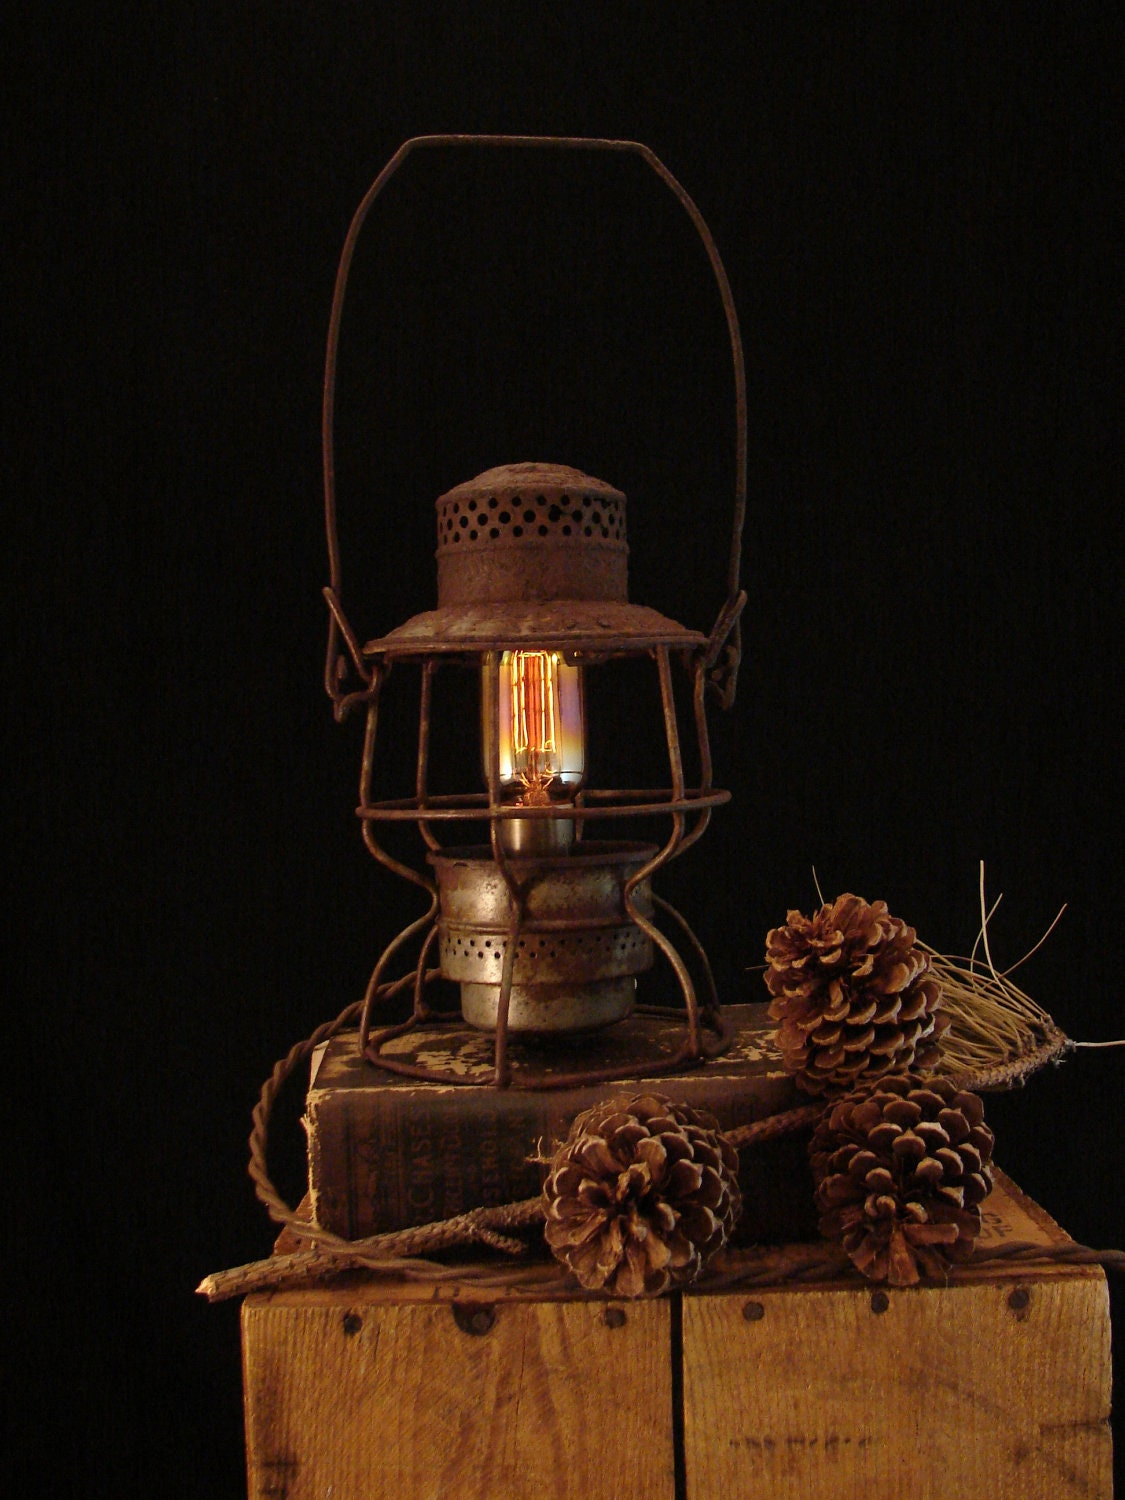 Upcycled Vintage Railroad Lantern Lamp With Filament Bulb